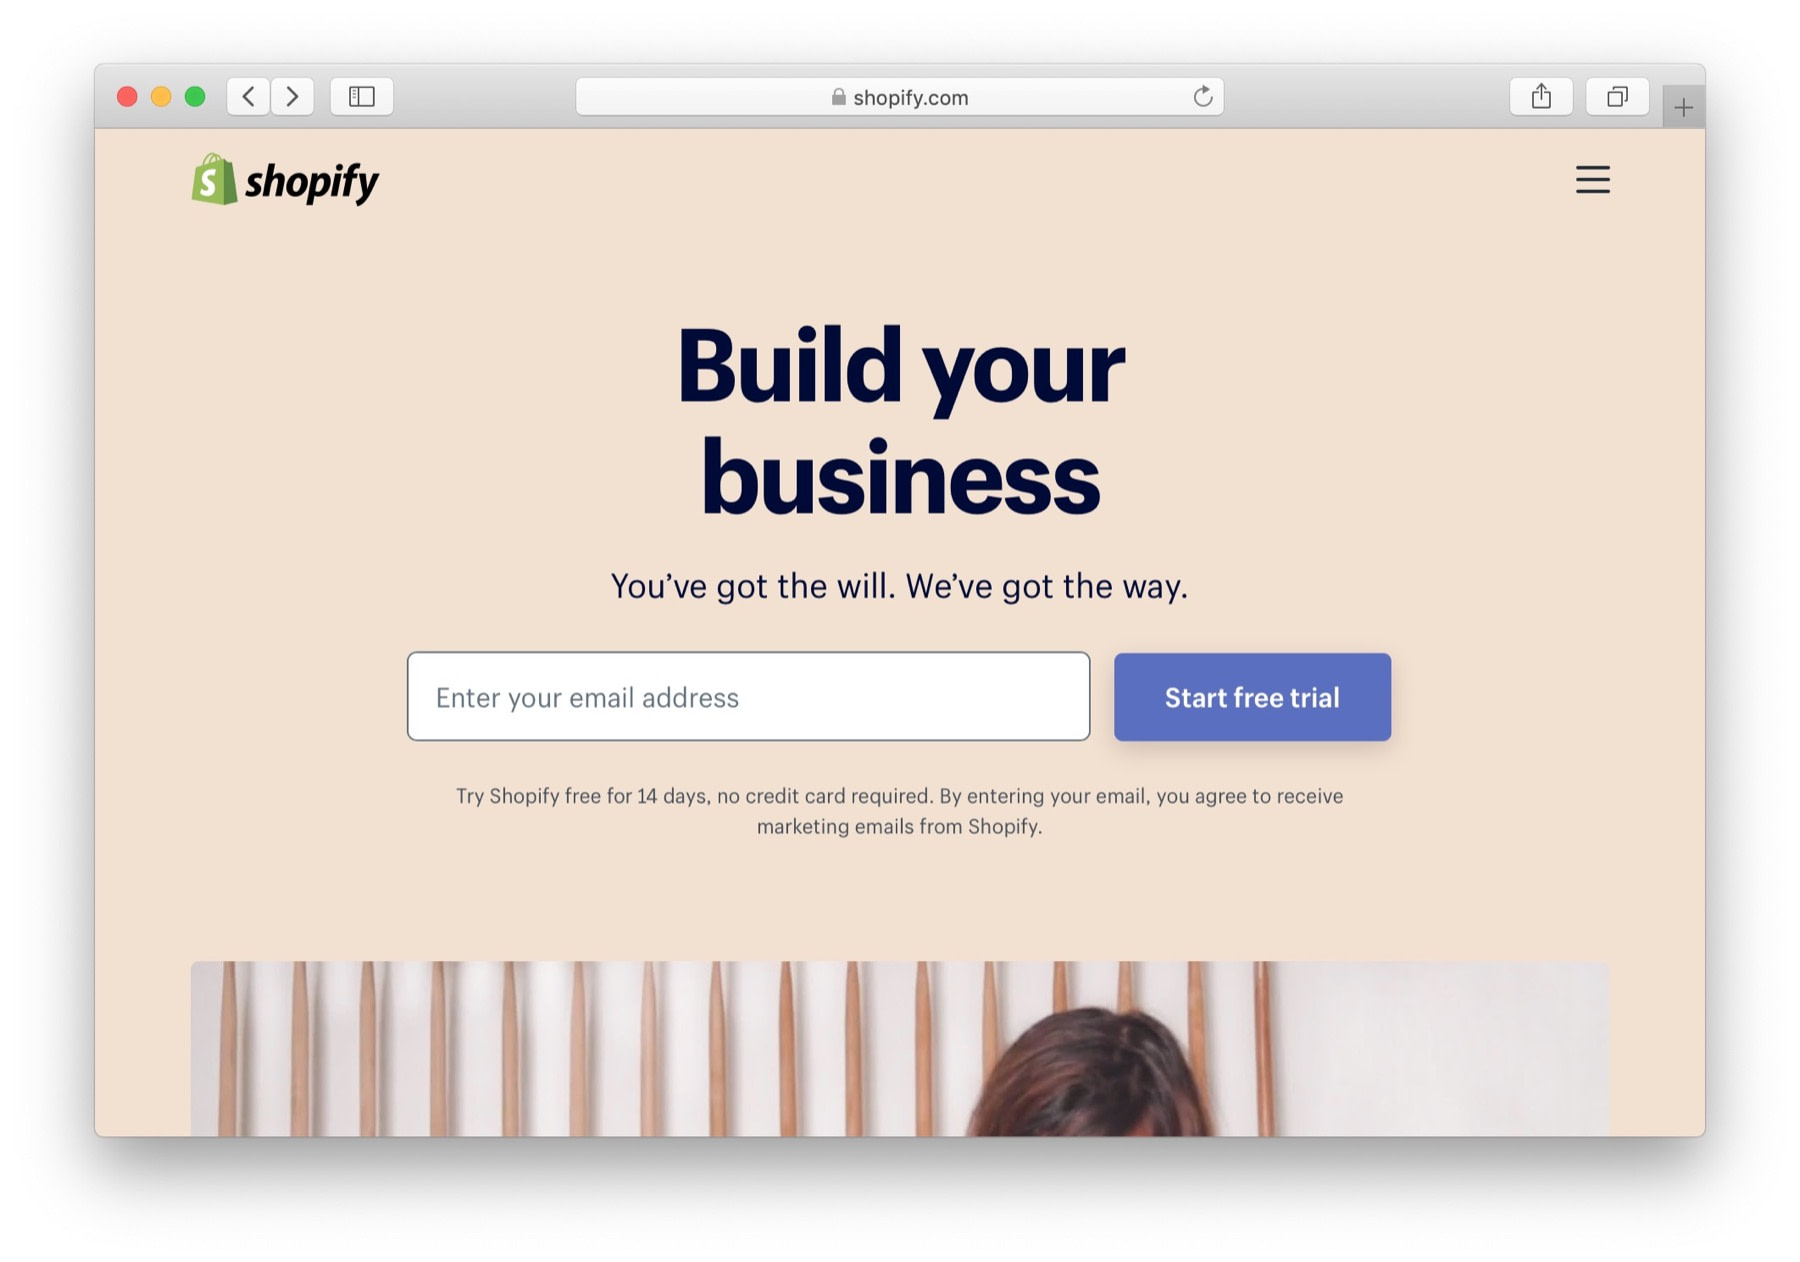 shopify - great platform to start eCommerce business